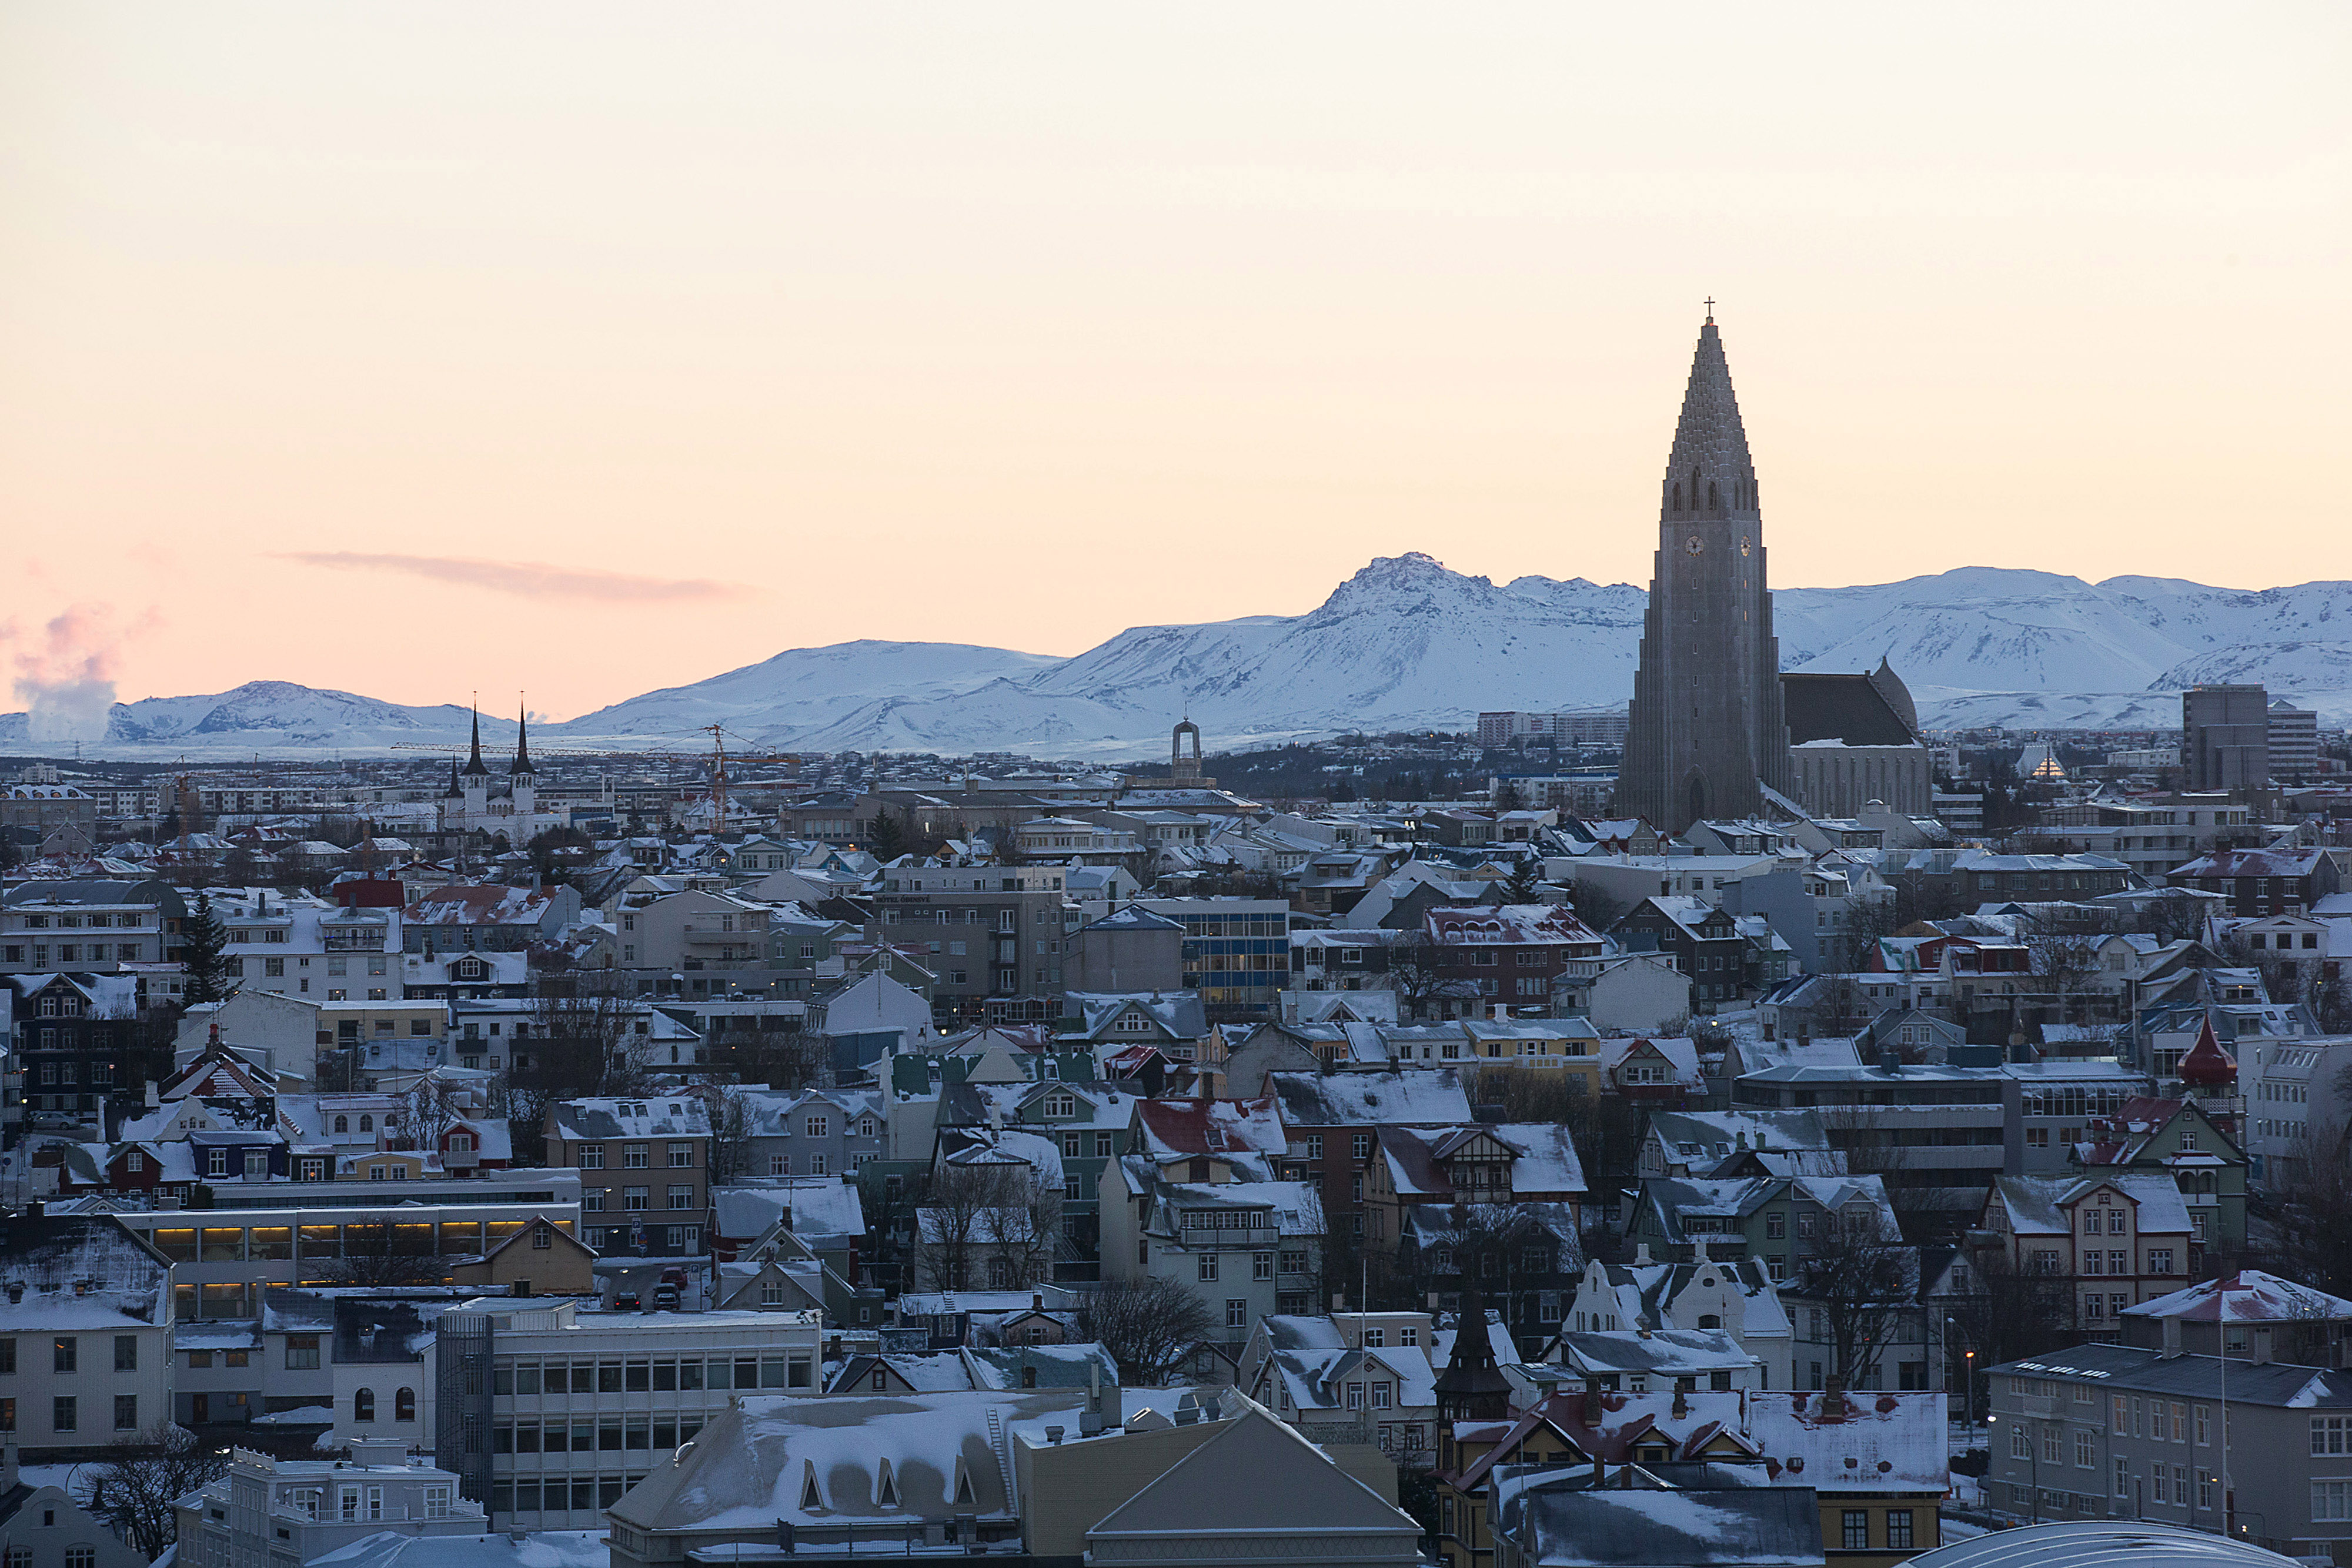 In Iceland, little interest in European Union membership